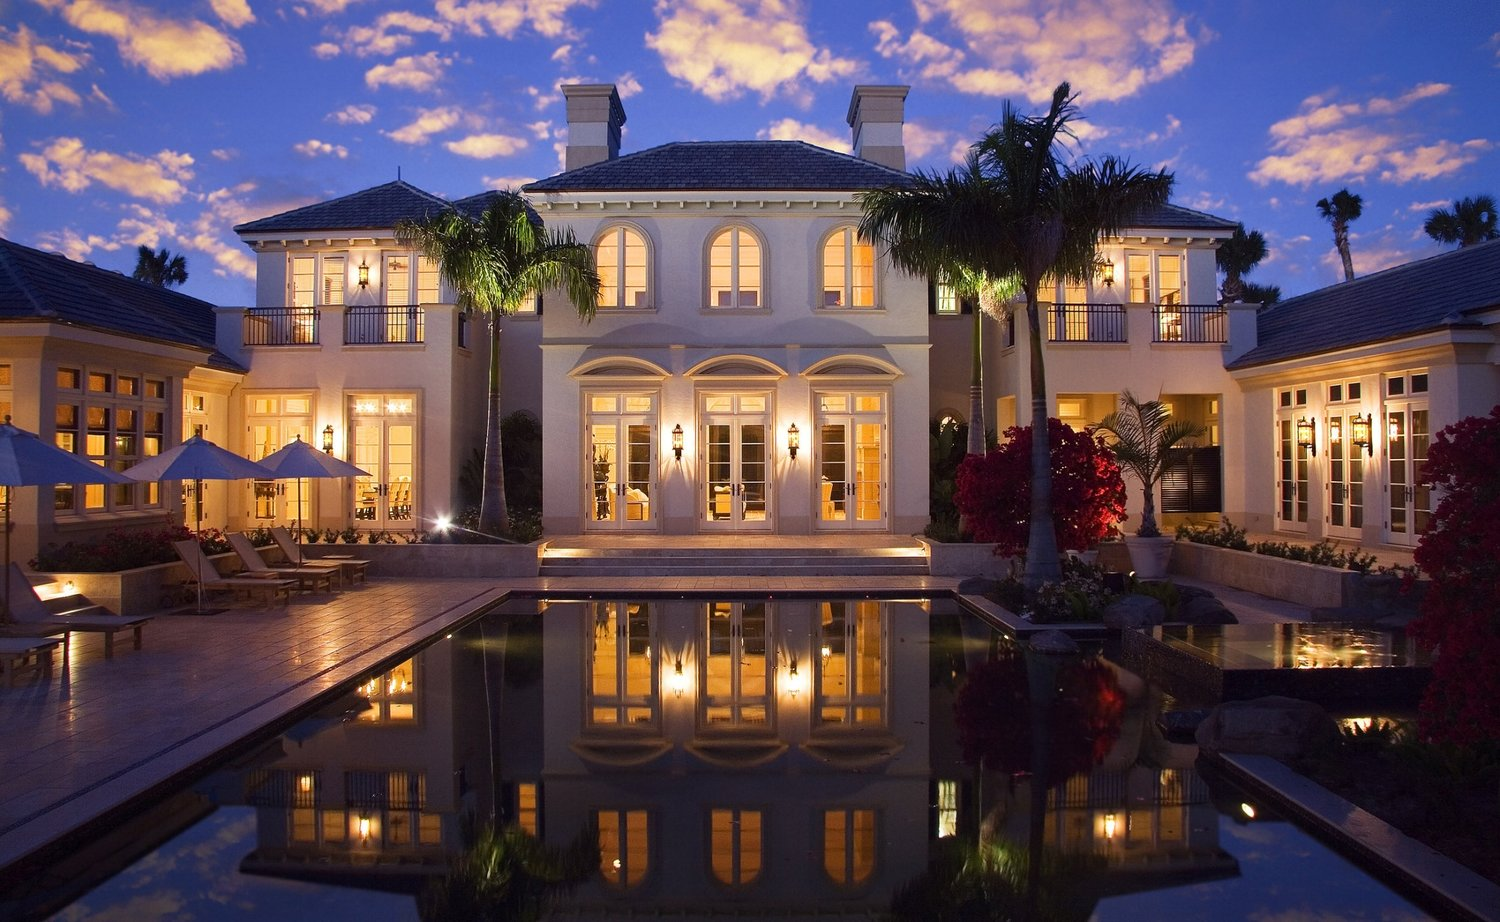 interior-premium-modern-mansion-with-outdoor-swimming-pool-at-front-and-many-windows-plus-chimneys-exclusive-modern-mansion-with-classy-room-architecture-savannah-forsyth-park.jpg